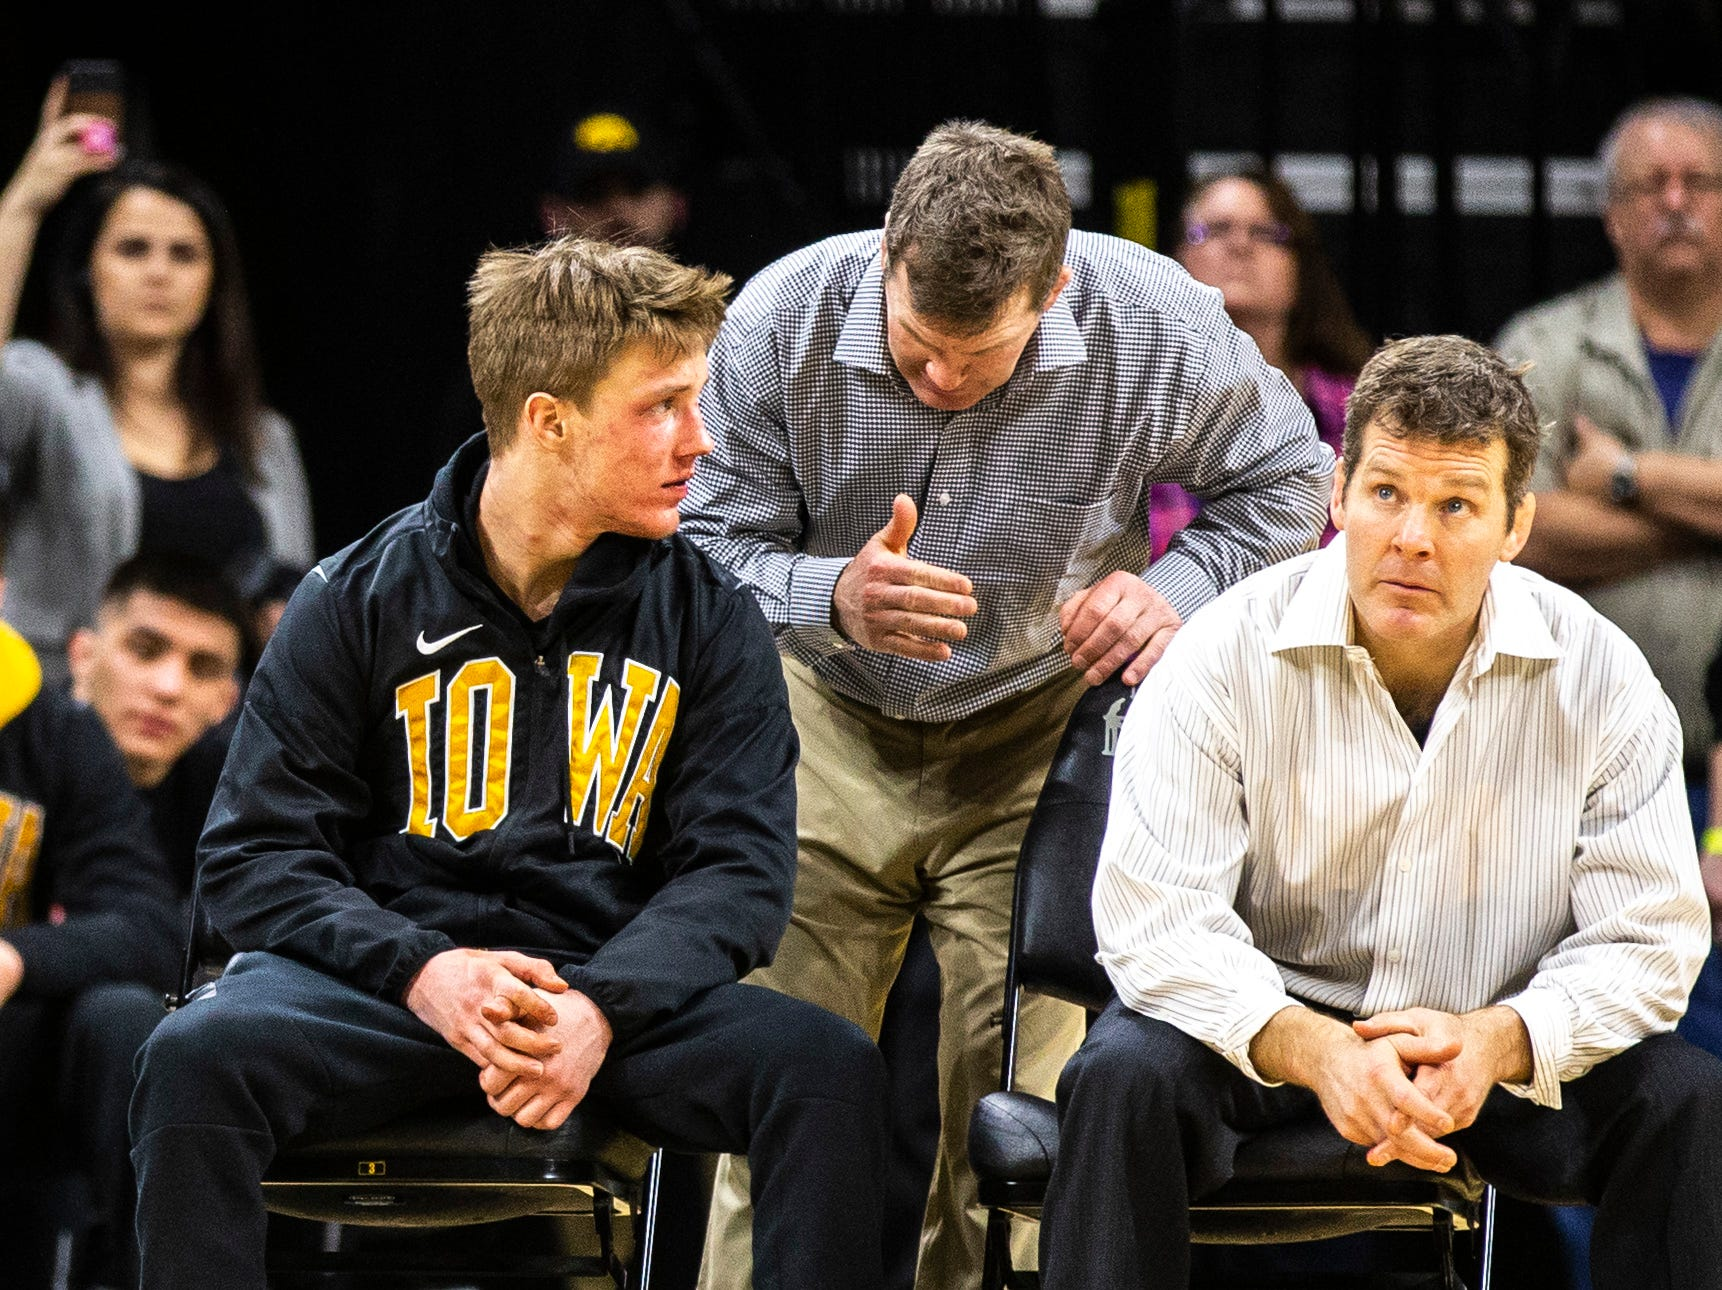 Iowa associate head coach Terry Brands, center, talks with 141-pounder Max Murin, left, while head coach Tom Brands watches a match during a NCAA Big Ten Conference wrestling dual on Friday, Feb. 15, 2019 at Carver-Hawkeye Arena in Iowa City, Iowa.